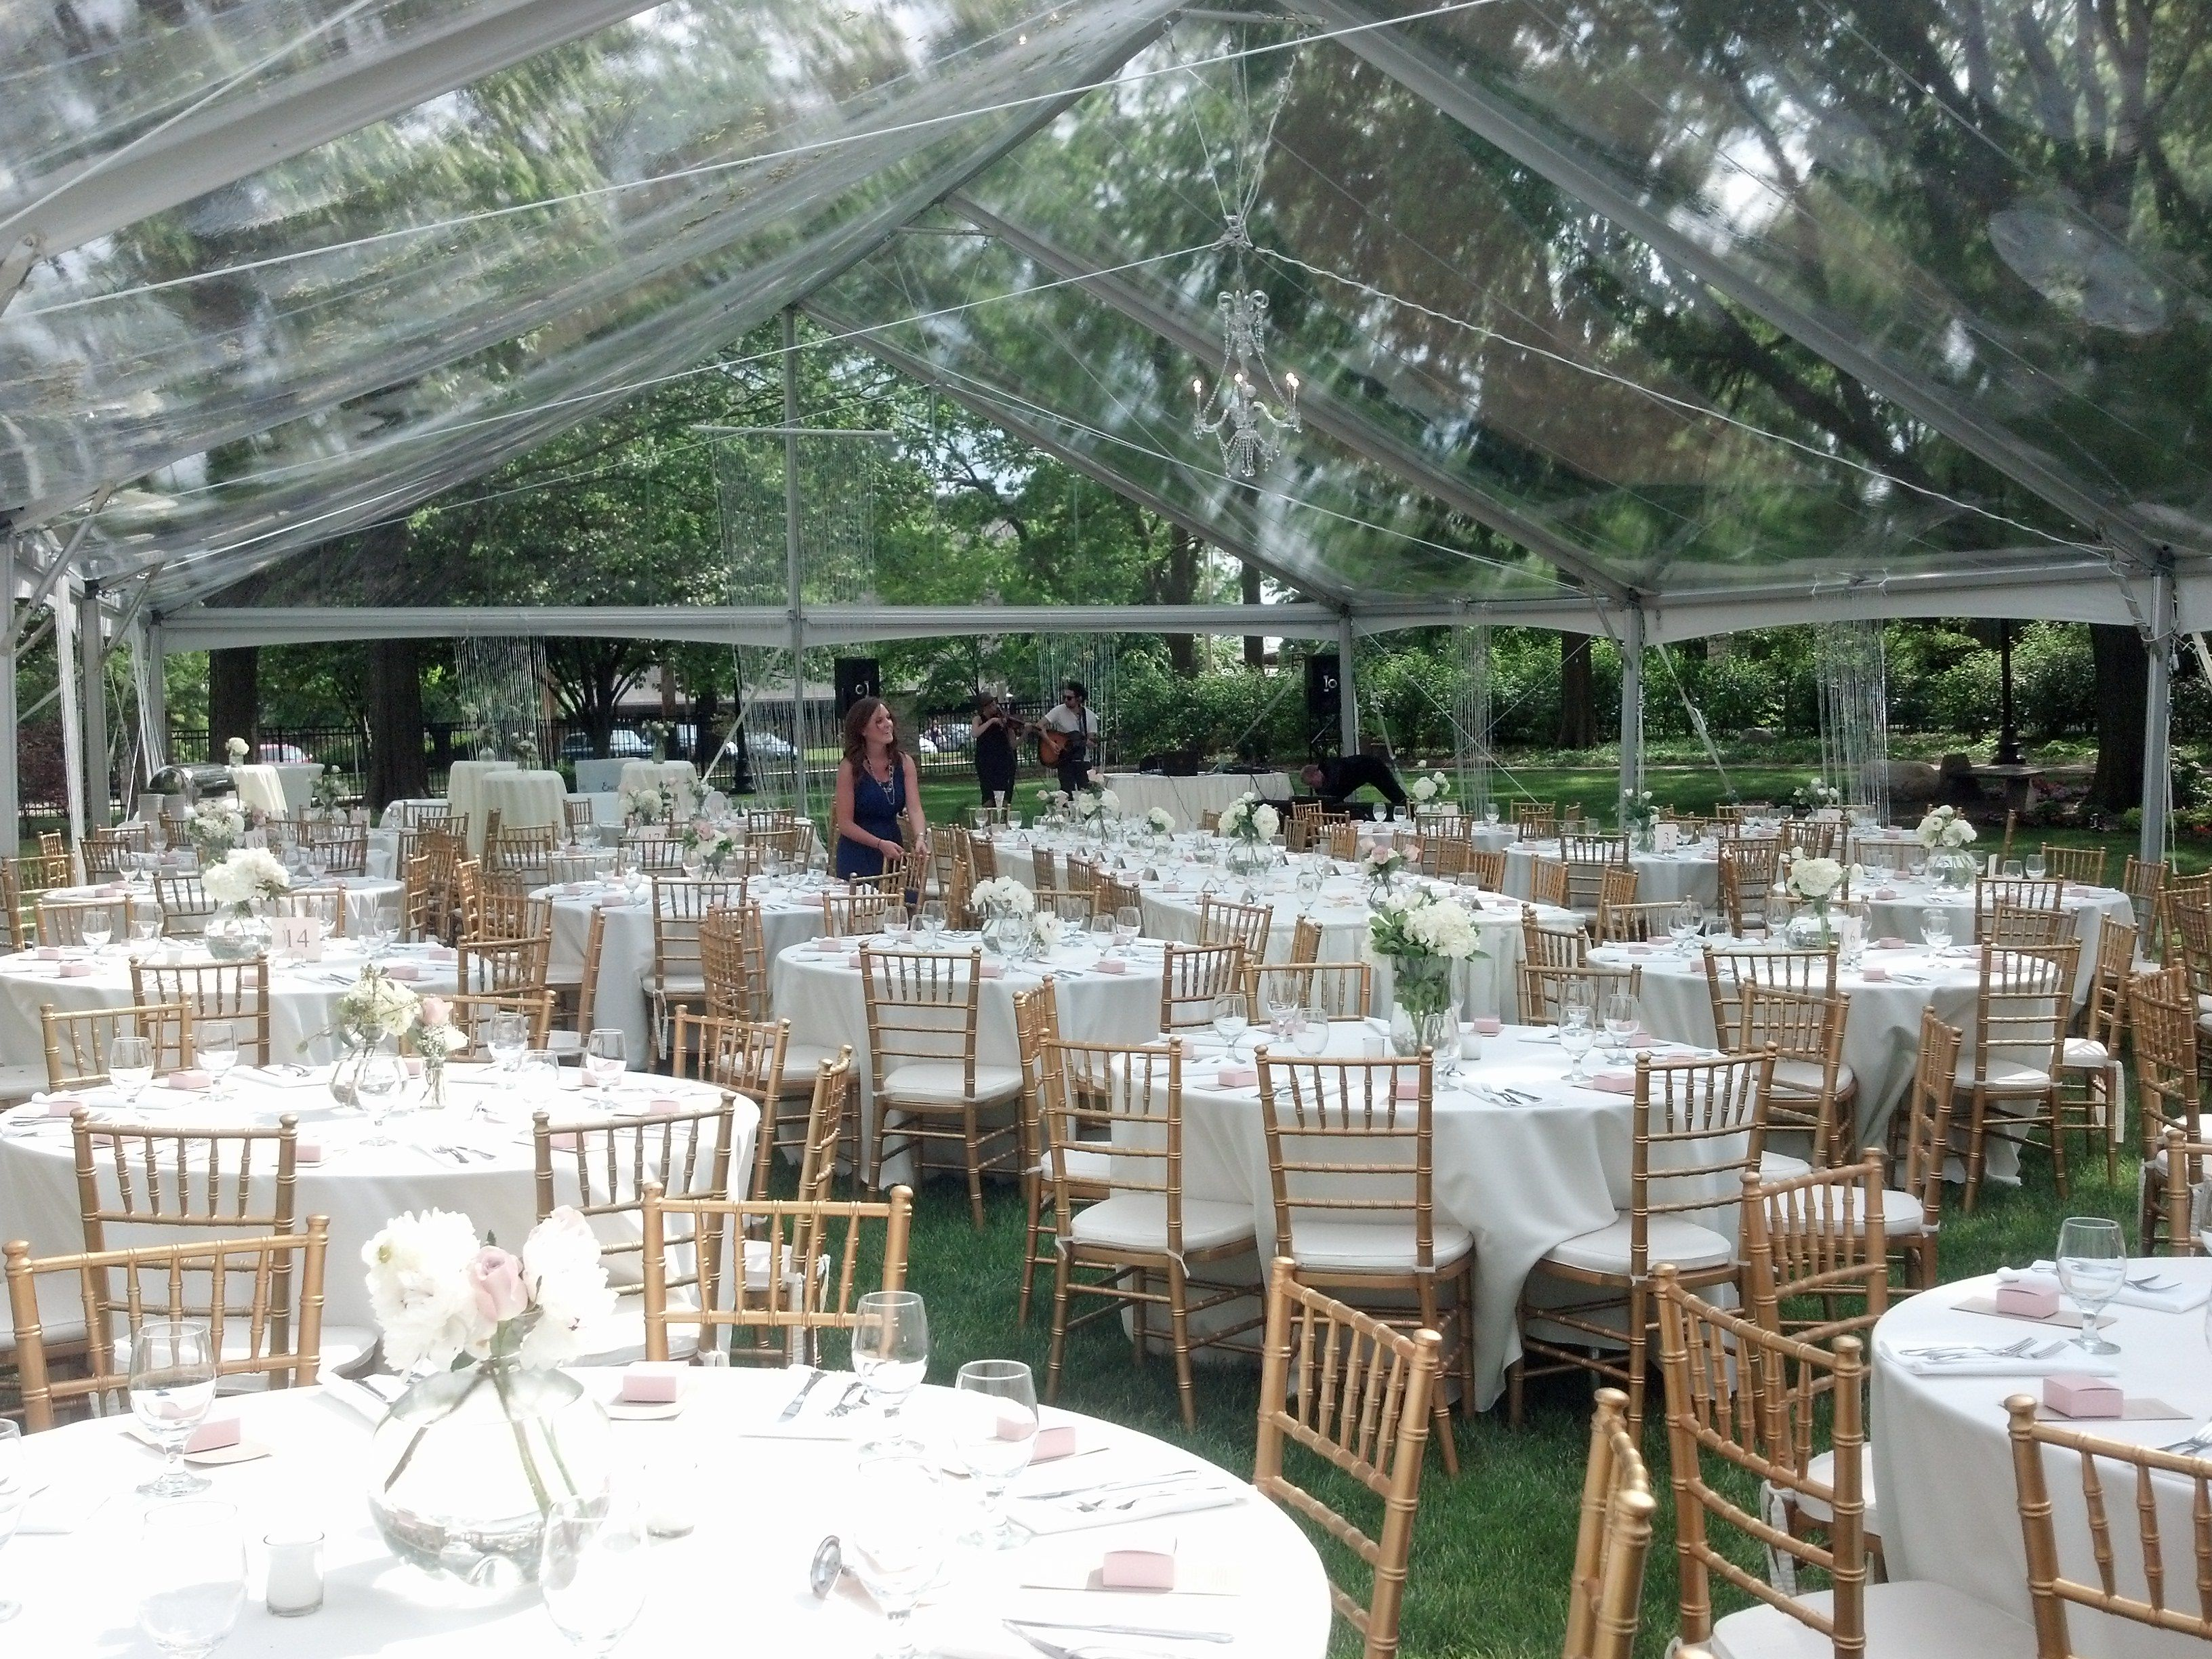 Advantages Of The Outdoor Wedding Reception: 40x80 Jumbo Trac Clear Span Clear Top Tent W/ Ivory Linens